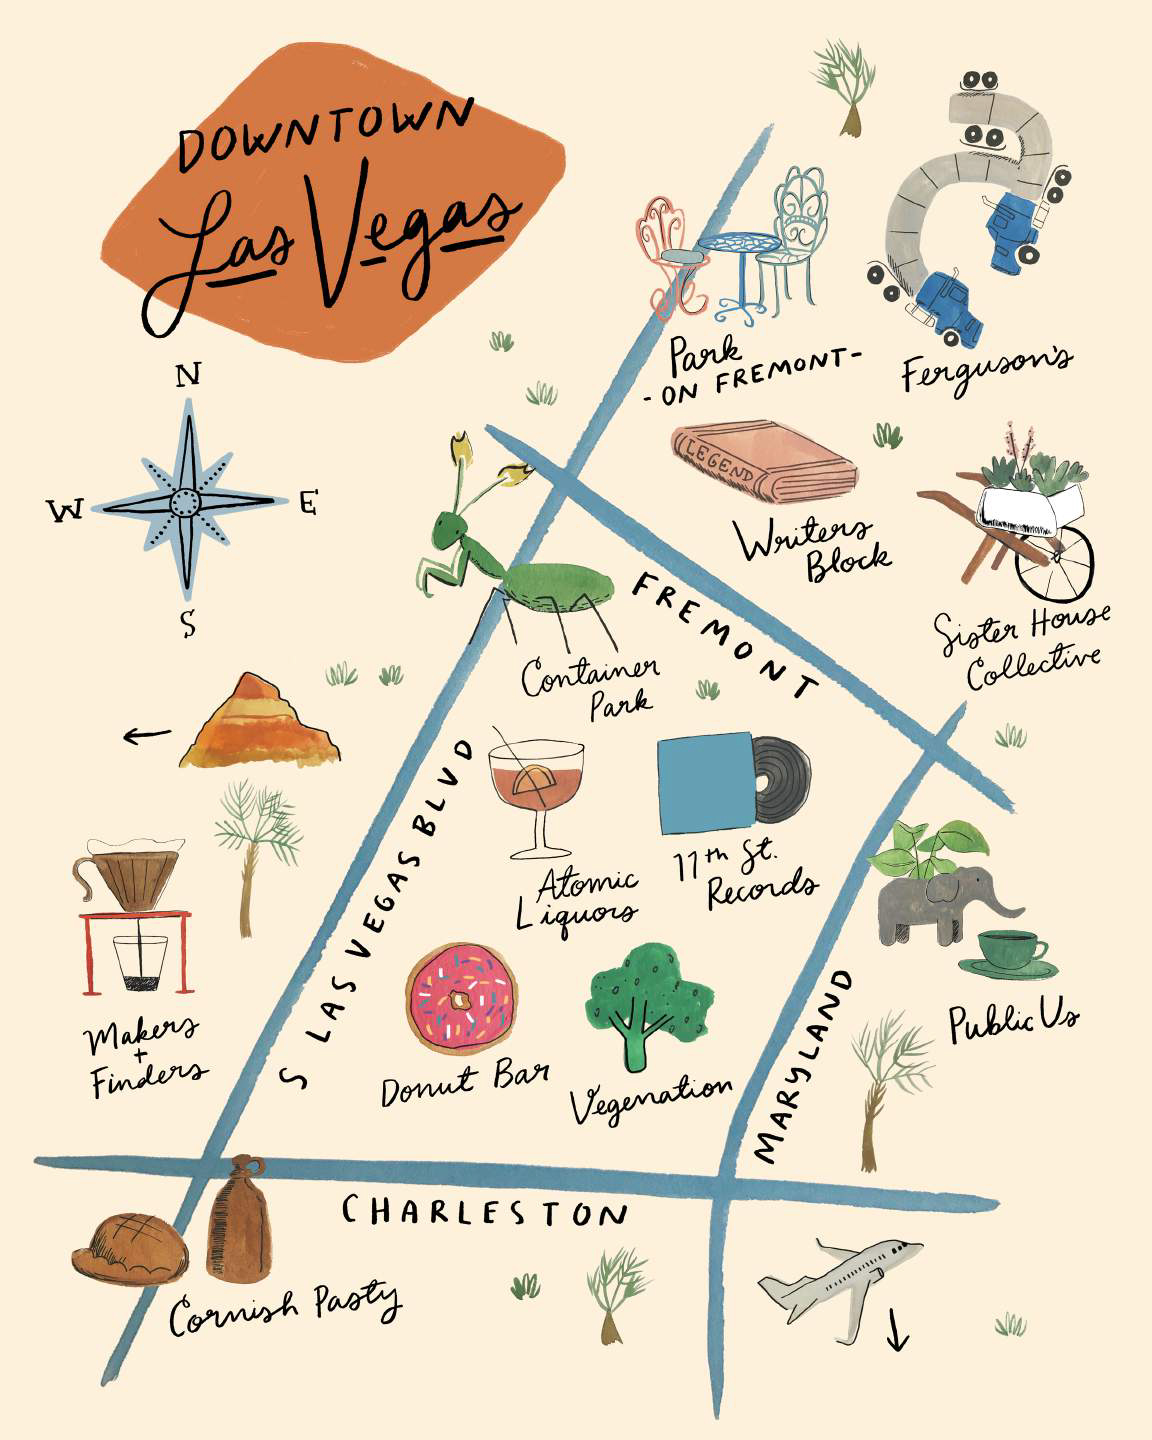 Illustrated Downtown Las Vegas City map